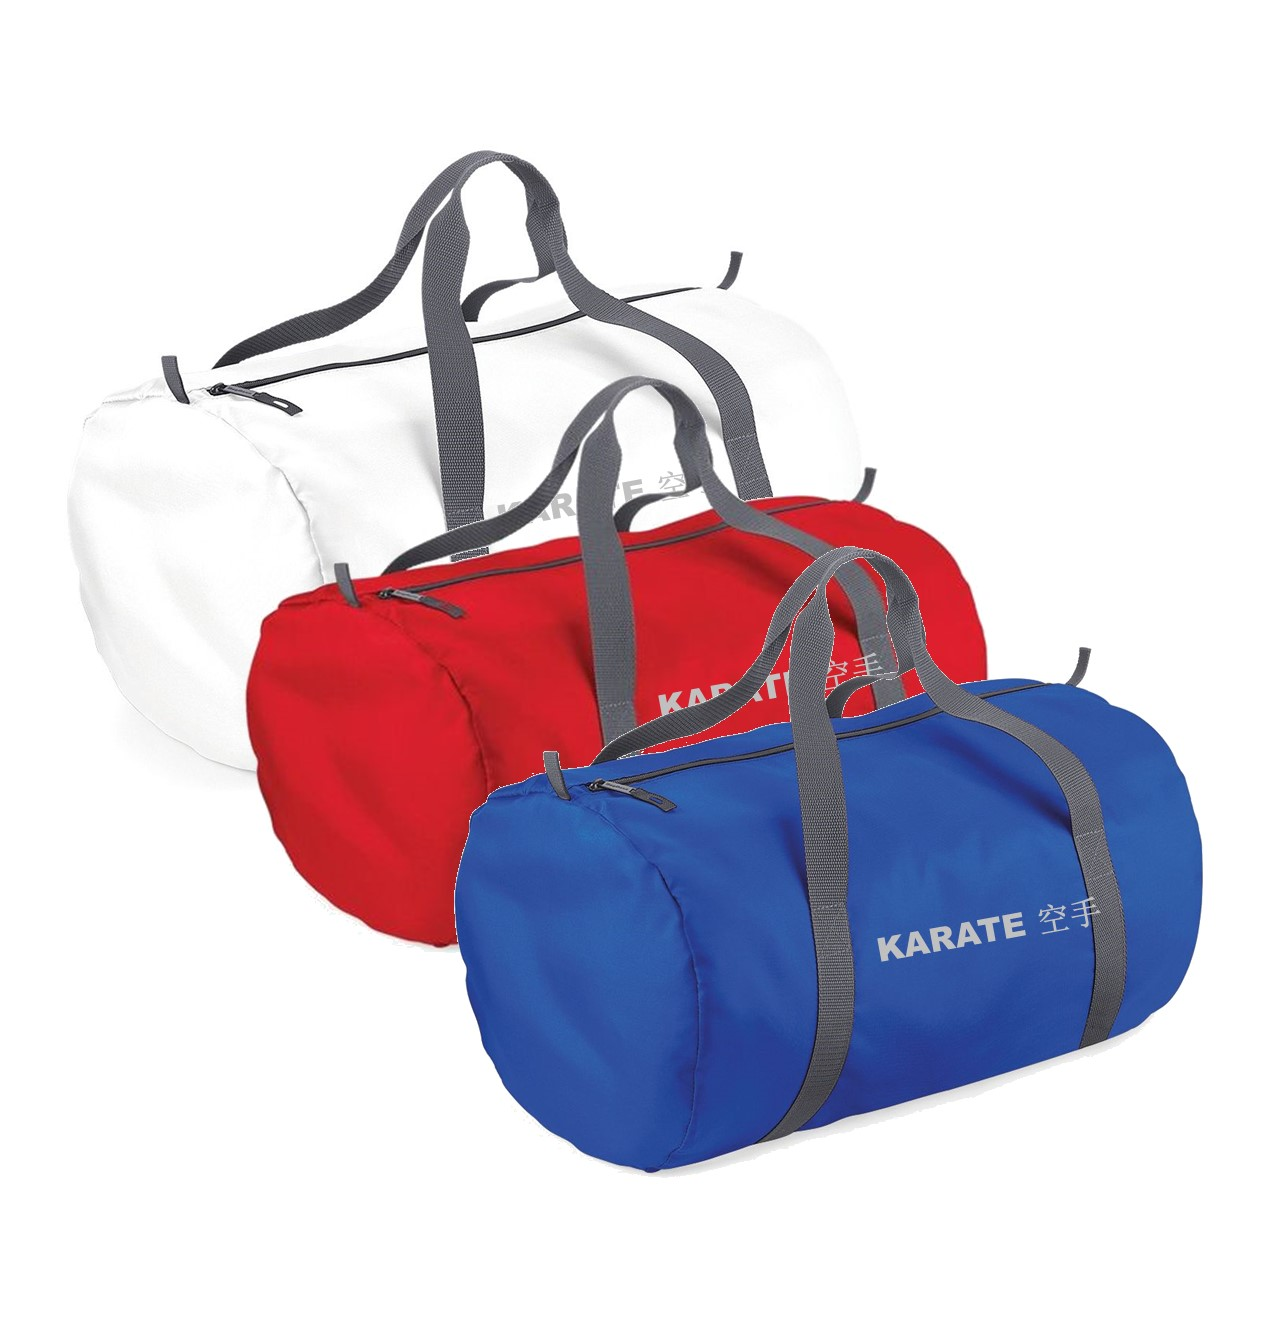 CP-010 KEEP CLEAN RED,WHITE & BLUE KIT BAG FOR GI, MITTS & PADS